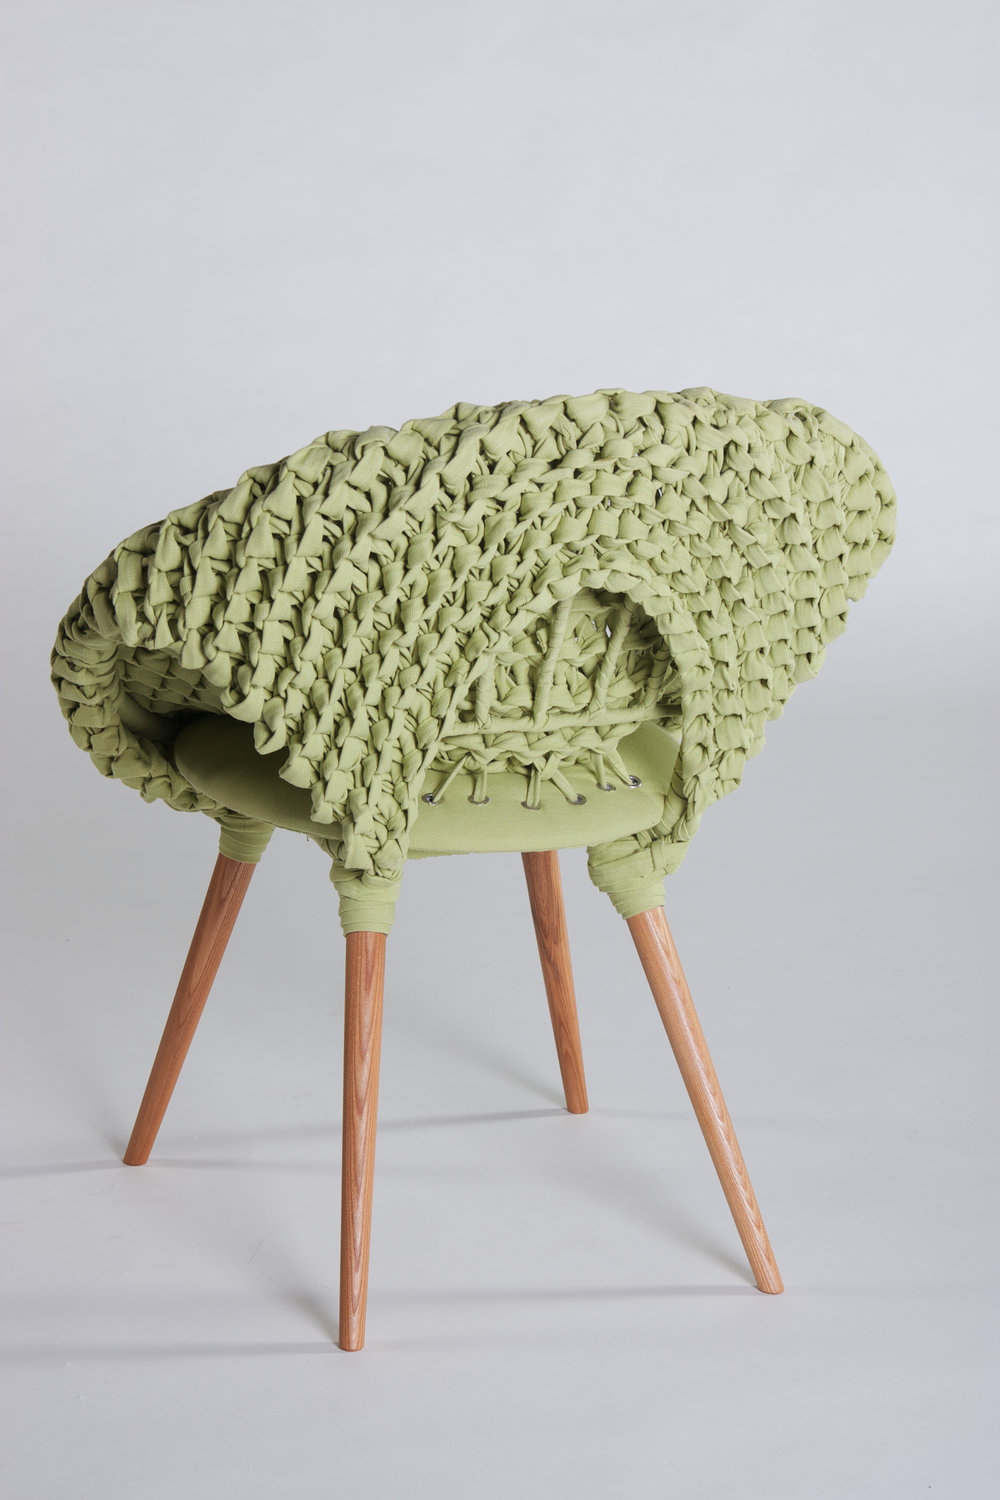 knitted-chair-rear-view.jpg